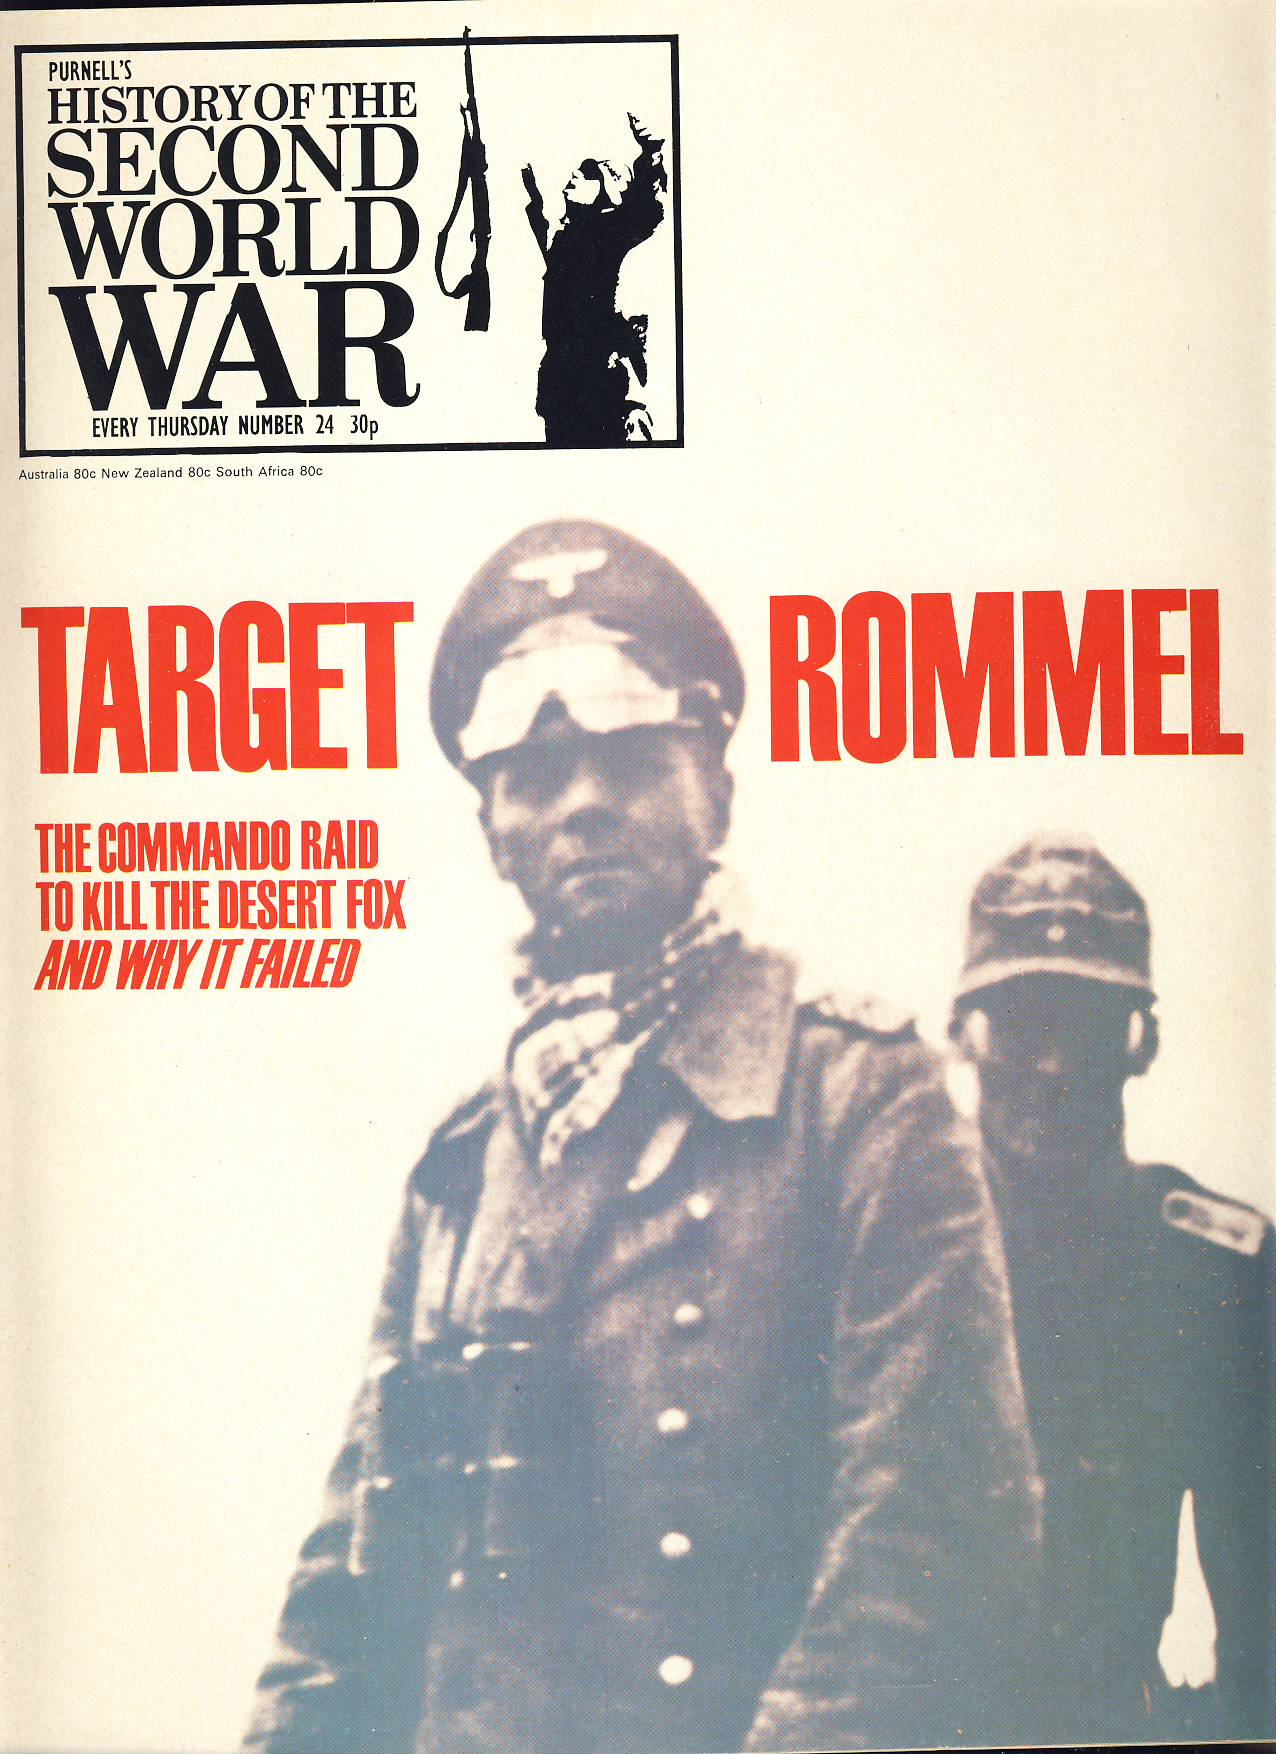 History of the Second World War Magazine #24 Commando Raid to Kill the Desert Fox. TARGET ROMMEL and why it failed. A vintage Purnell's weekly magazine in good read condition. Please see larger photo and full description for details.